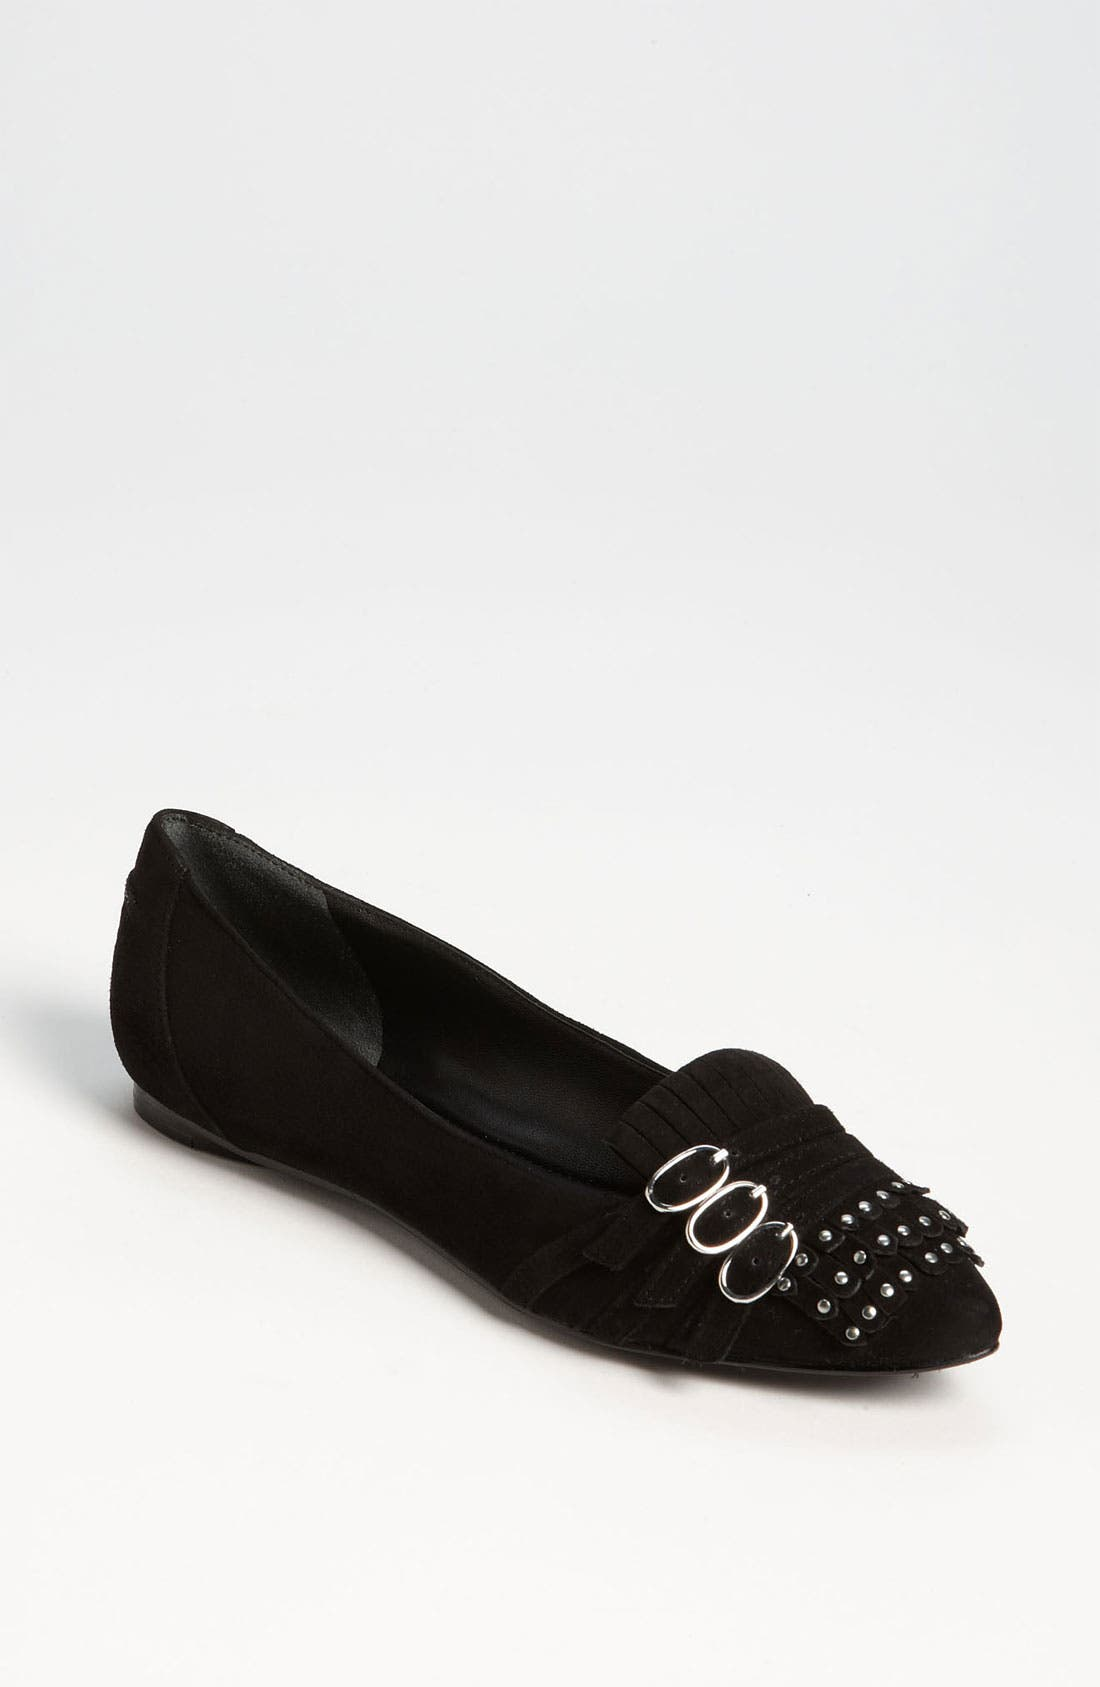 Alternate Image 1 Selected - Belle by Sigerson Morrison 'Volmir' Flat